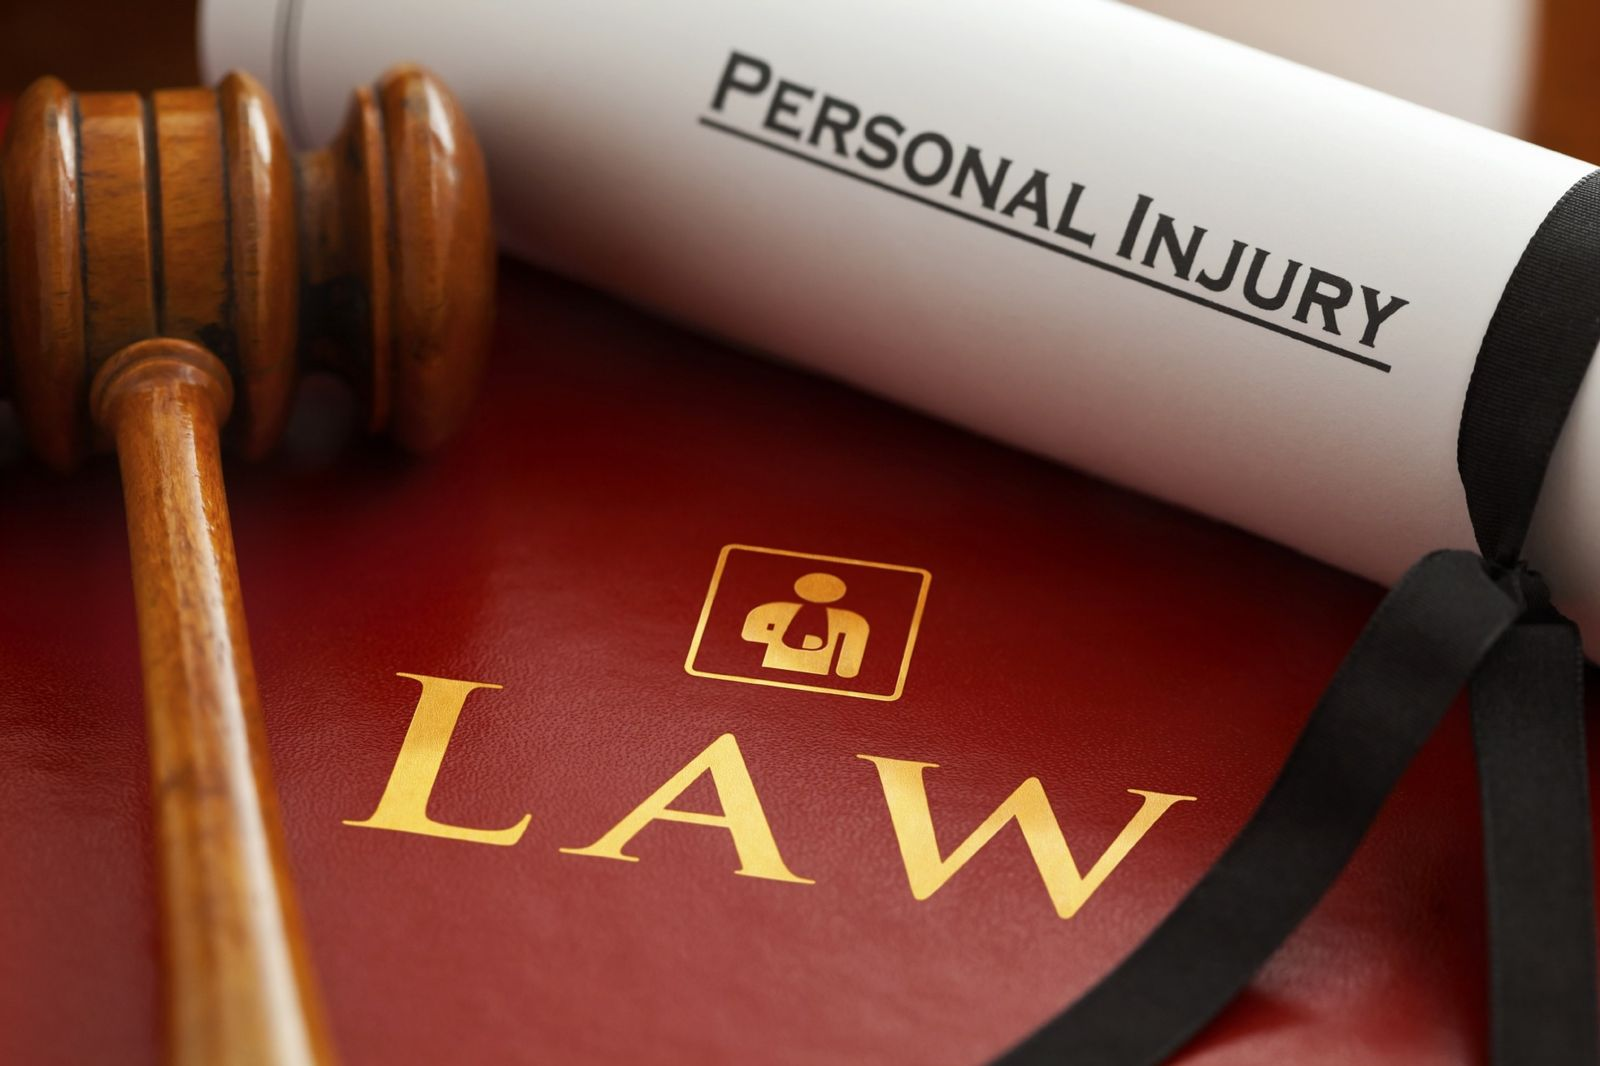 personal injury lawyer book and gavel